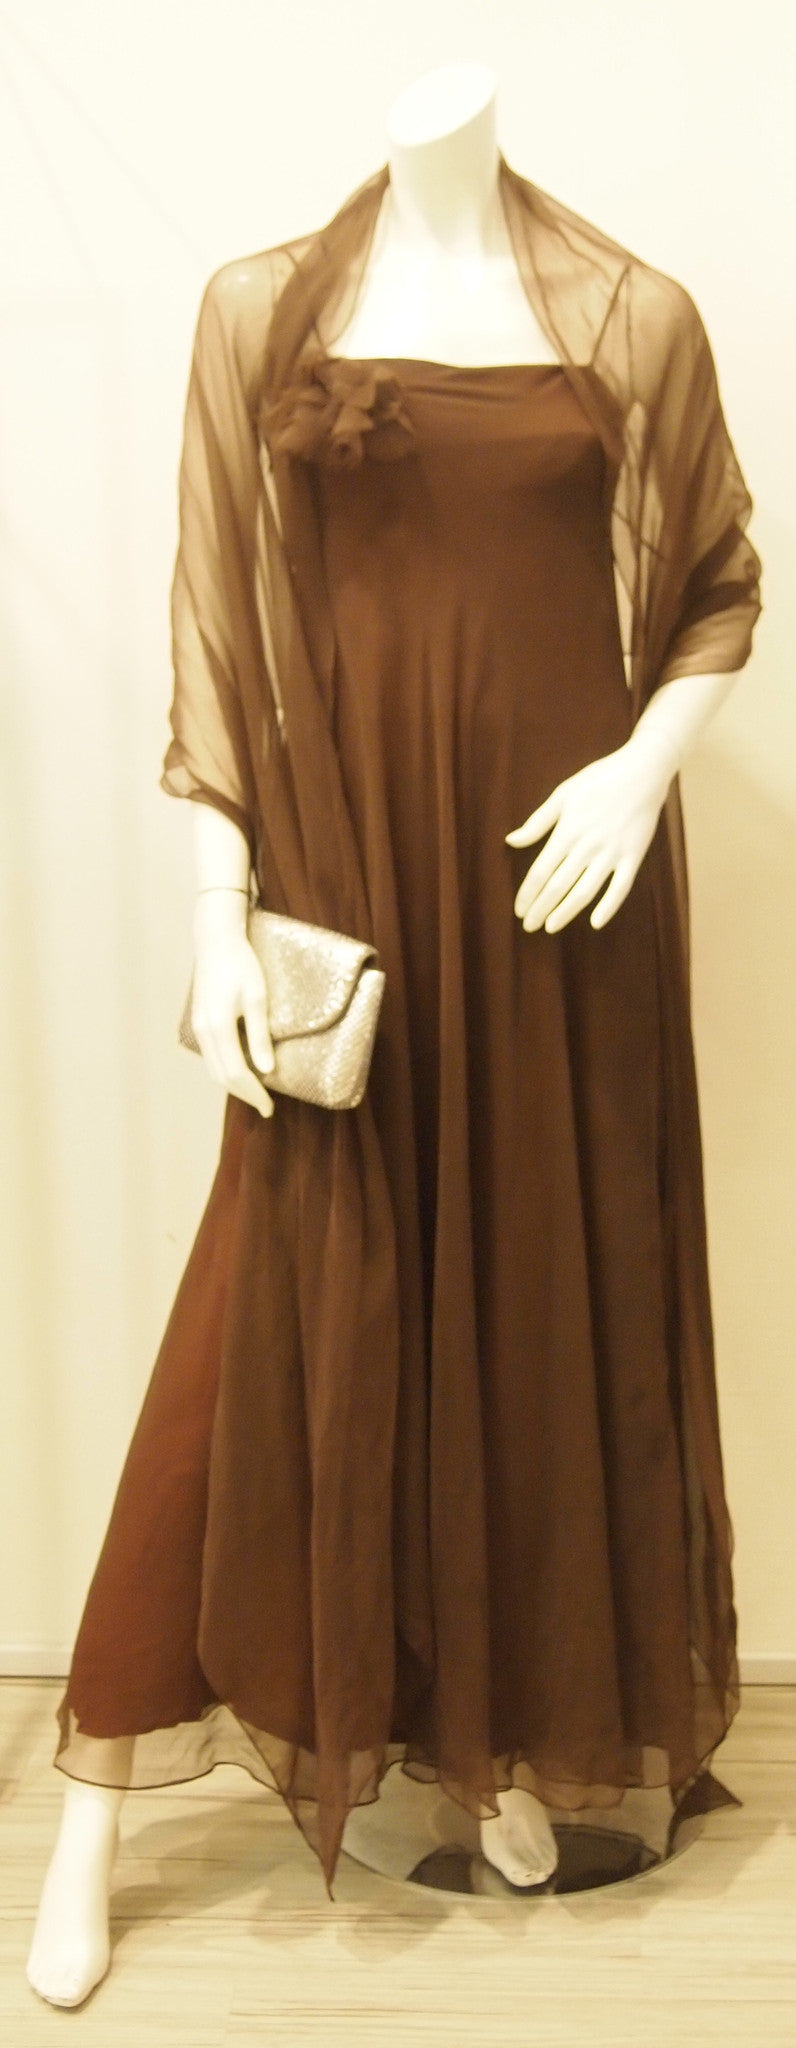 A Night with Chocolate Chiffon Vintage Evening Dress with Matching Shawl